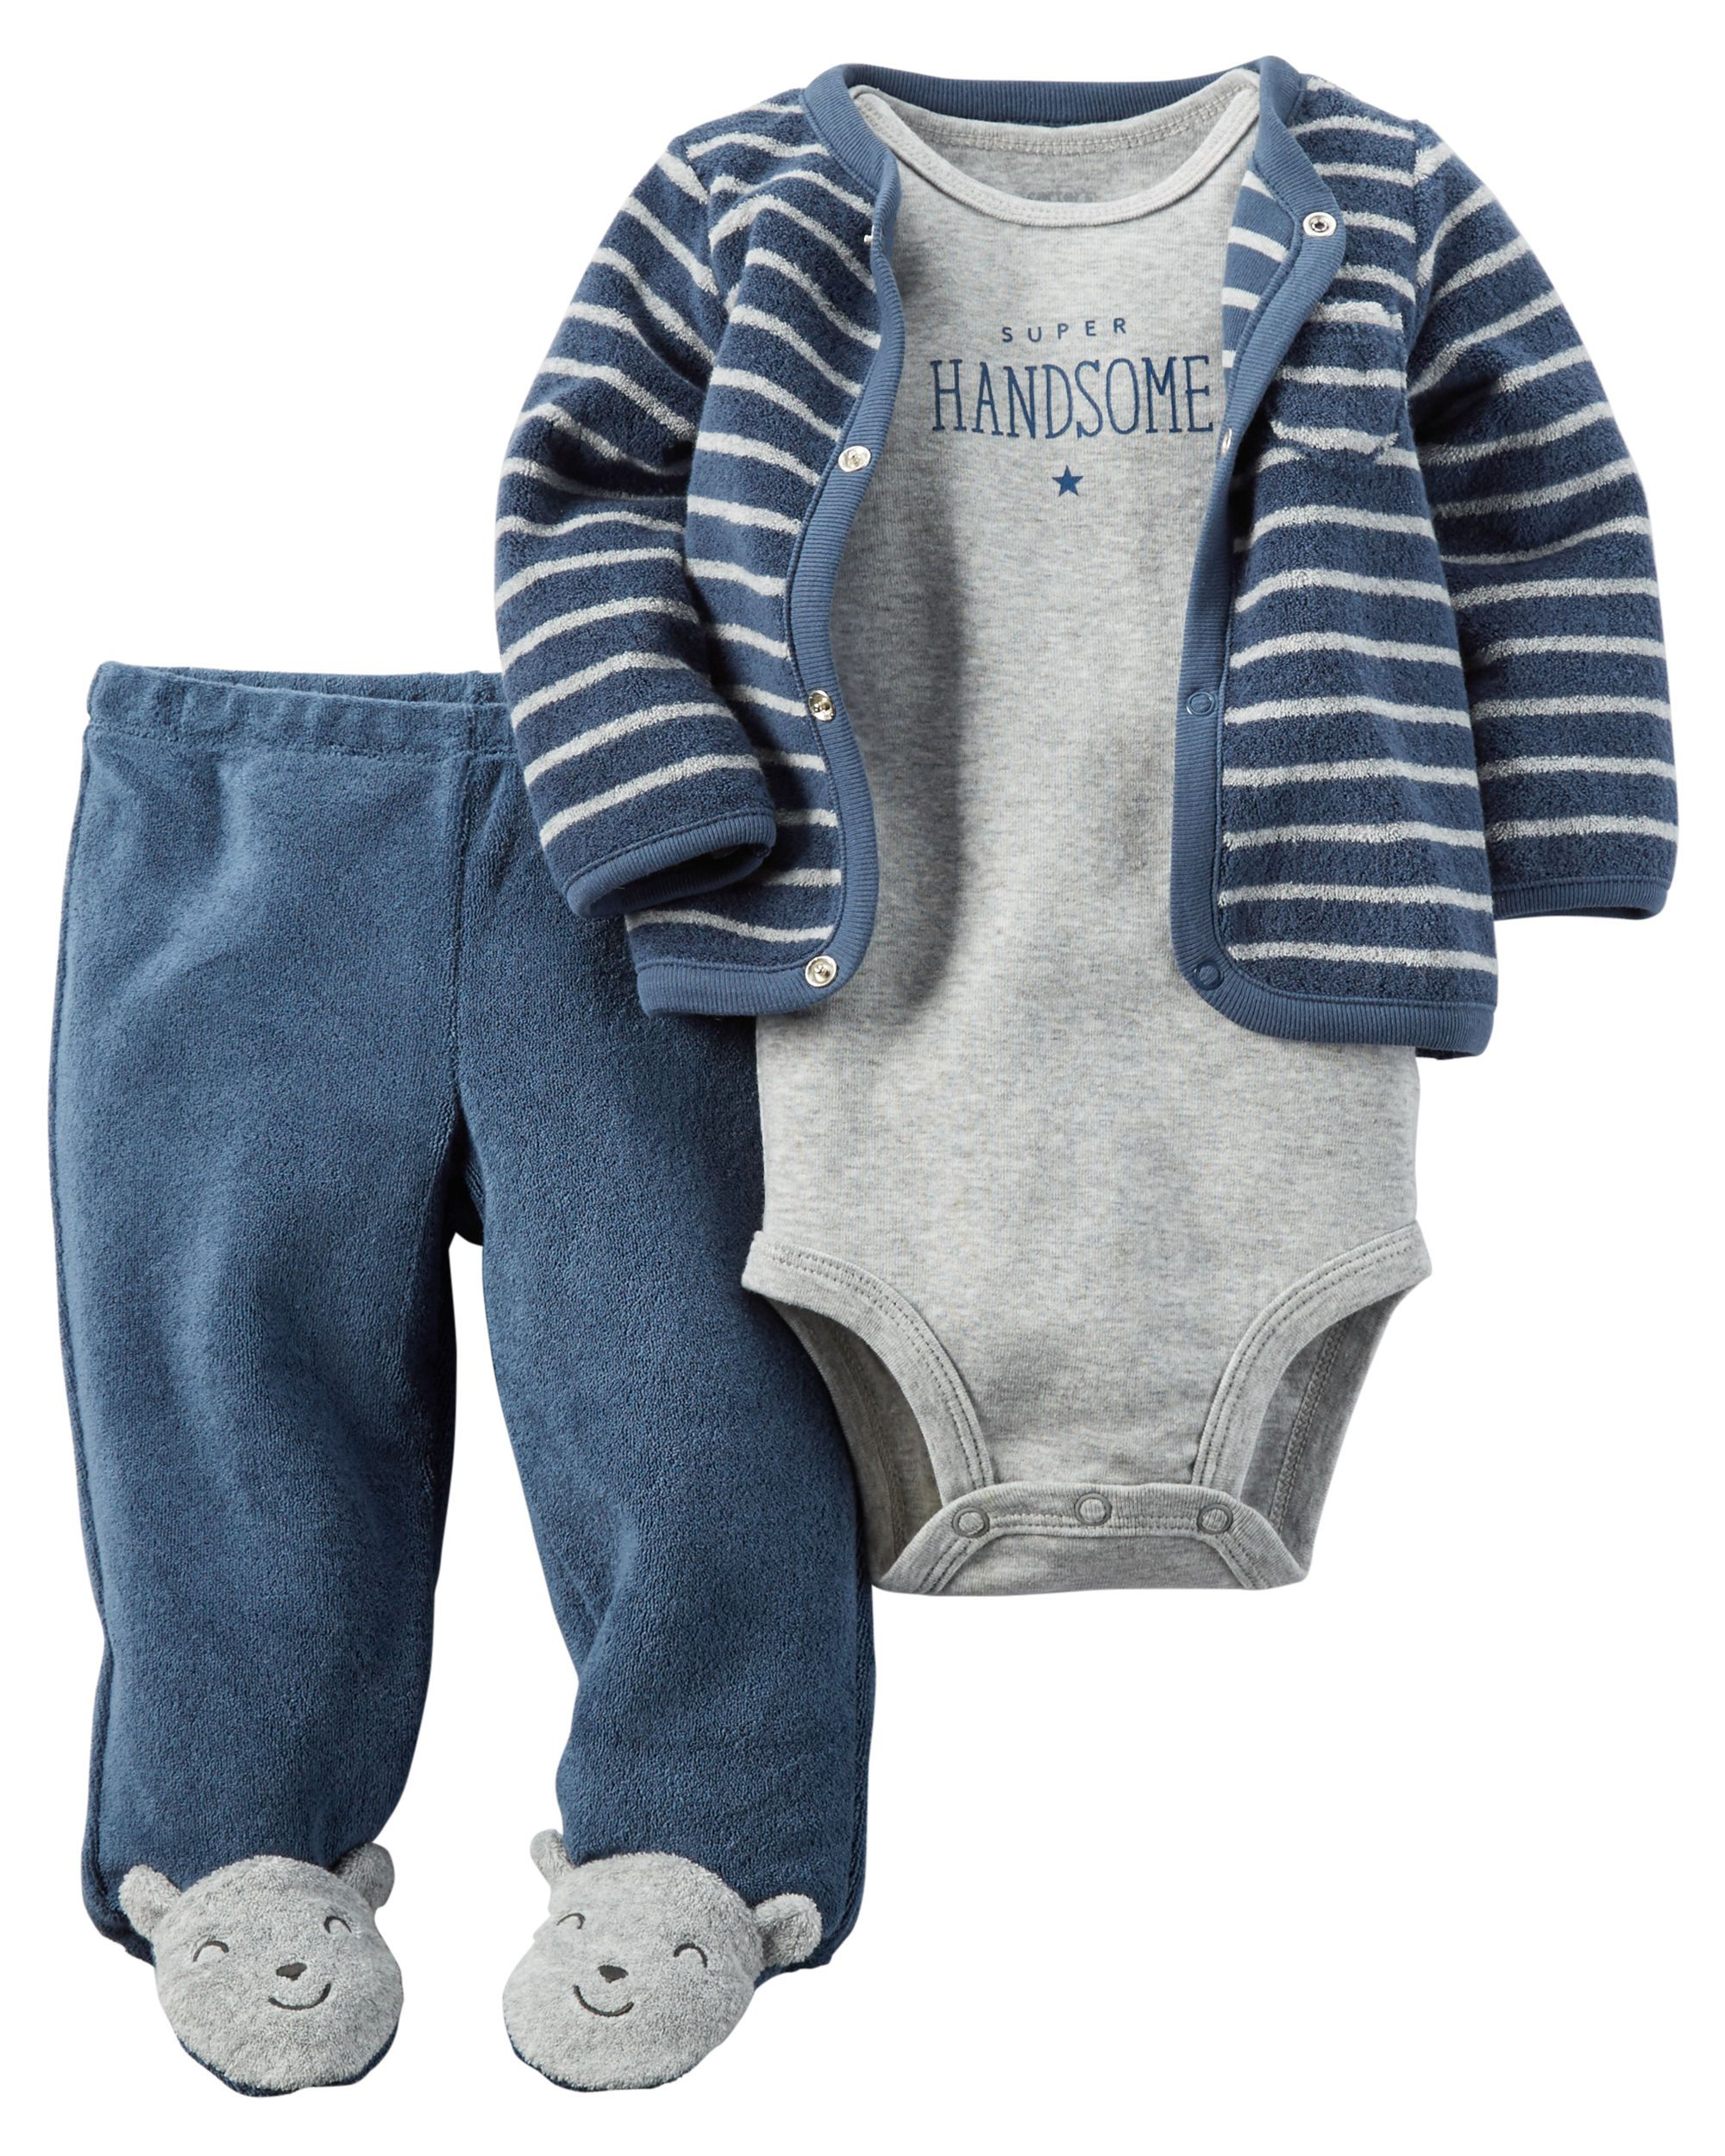 3 Piece Babysoft Footed Pant Set Little Baby Basics